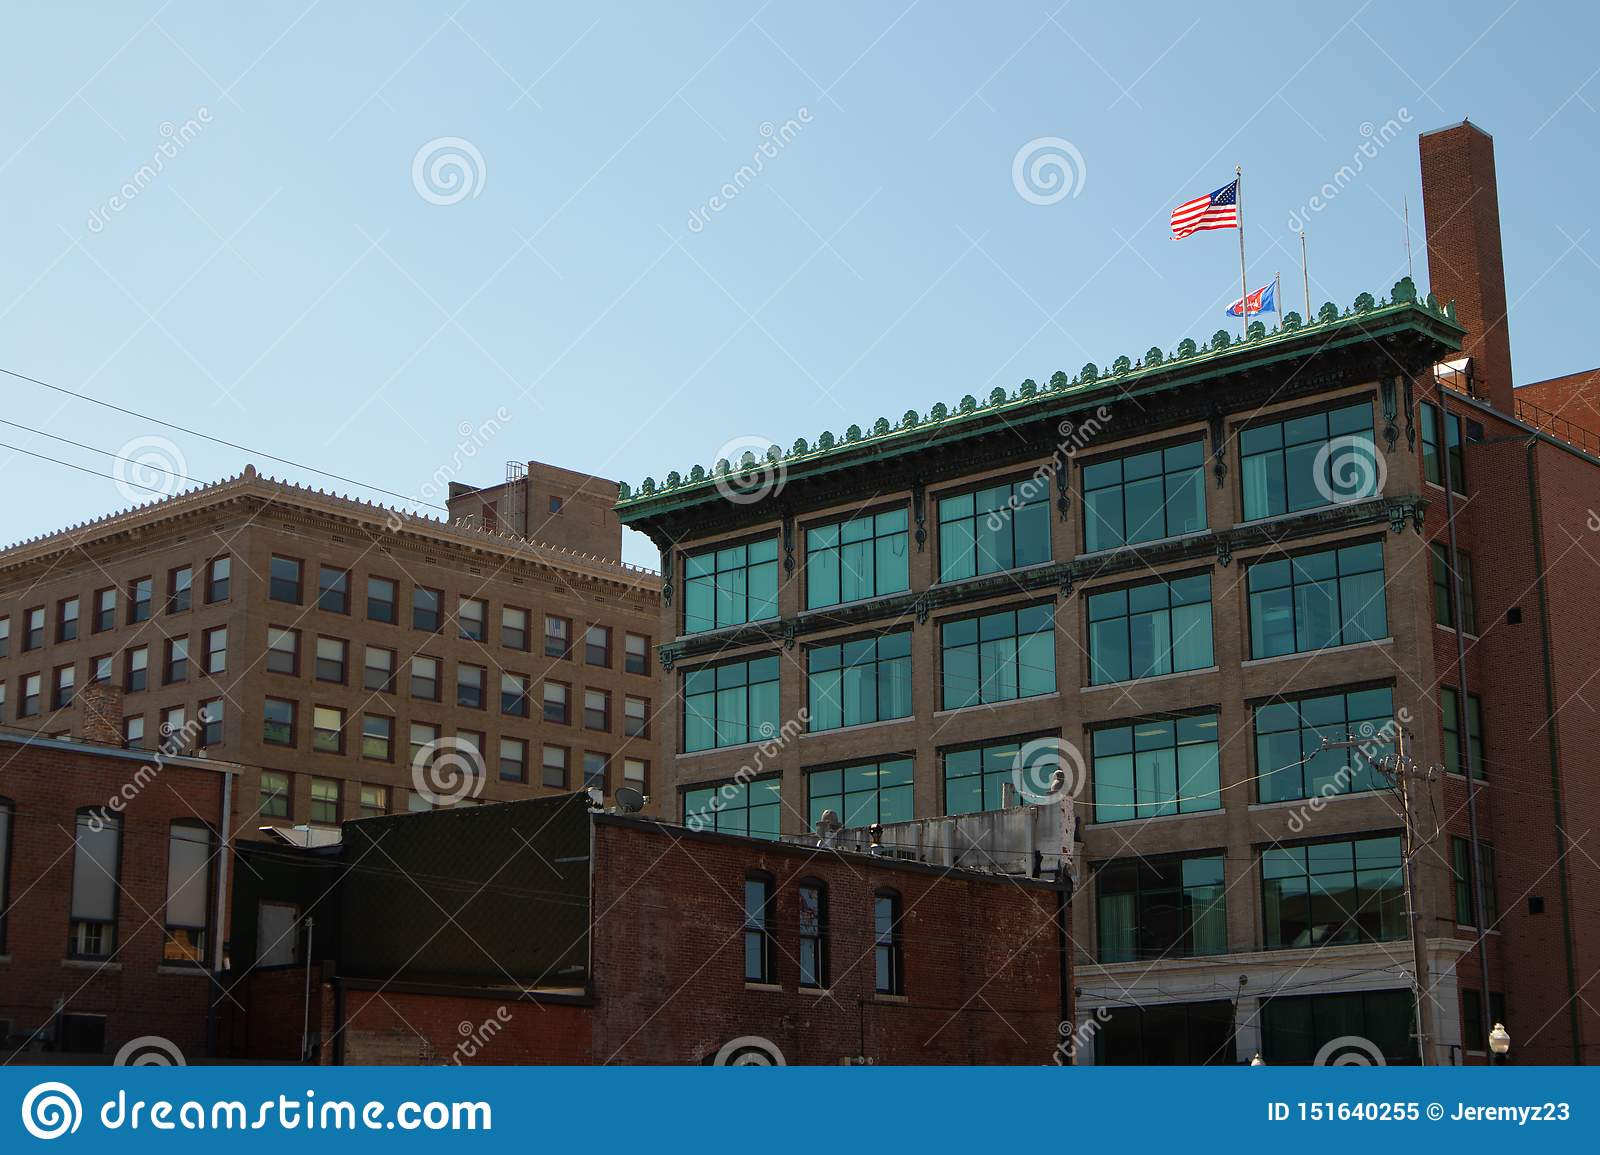 Office buildings with American Flag on roof